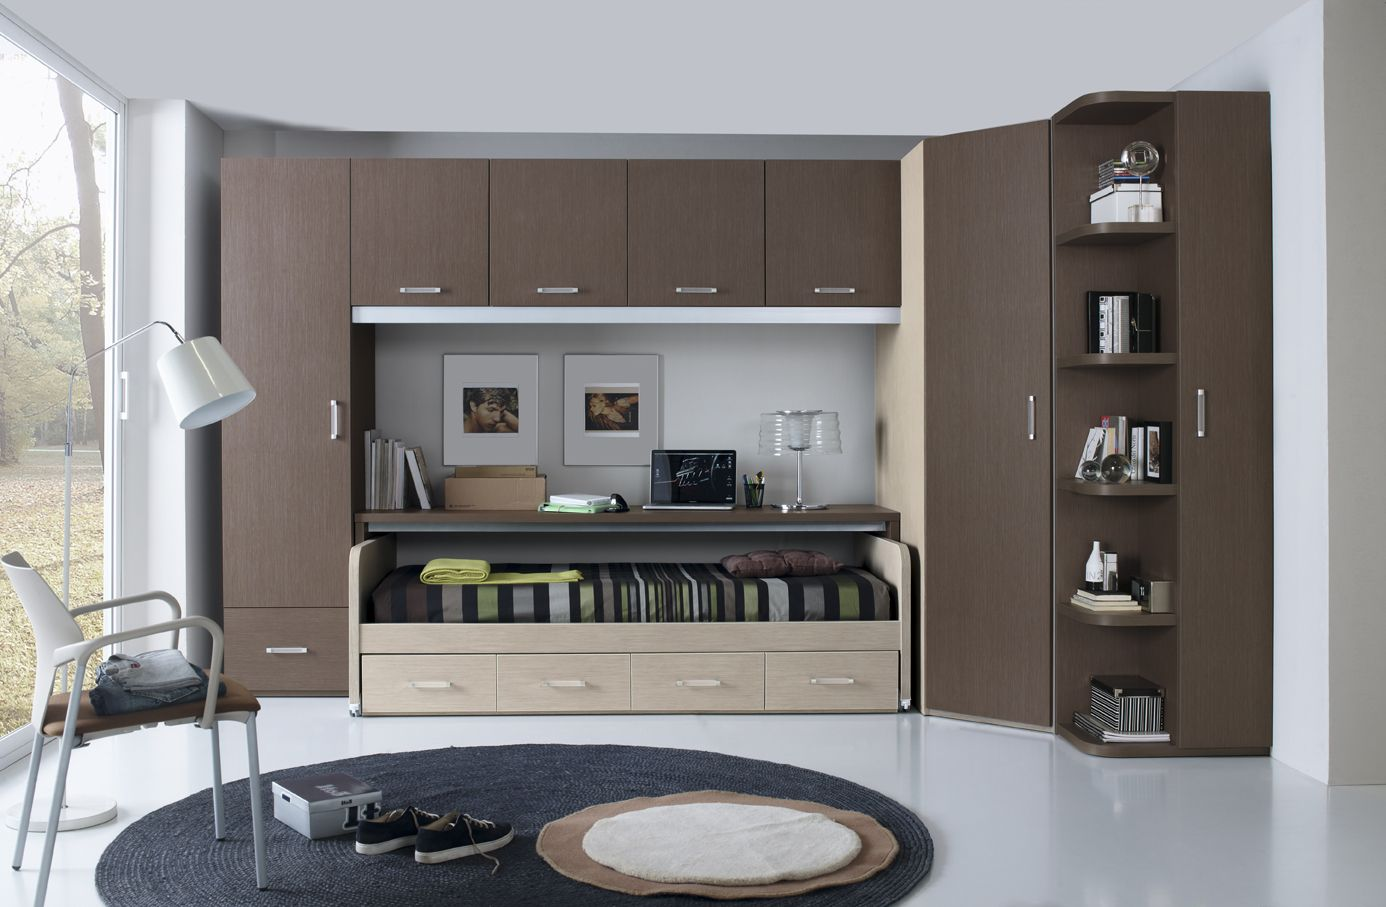 Muebles orts sonrie idees 2 dormitorio juvenil 65 kids for Muebles orts